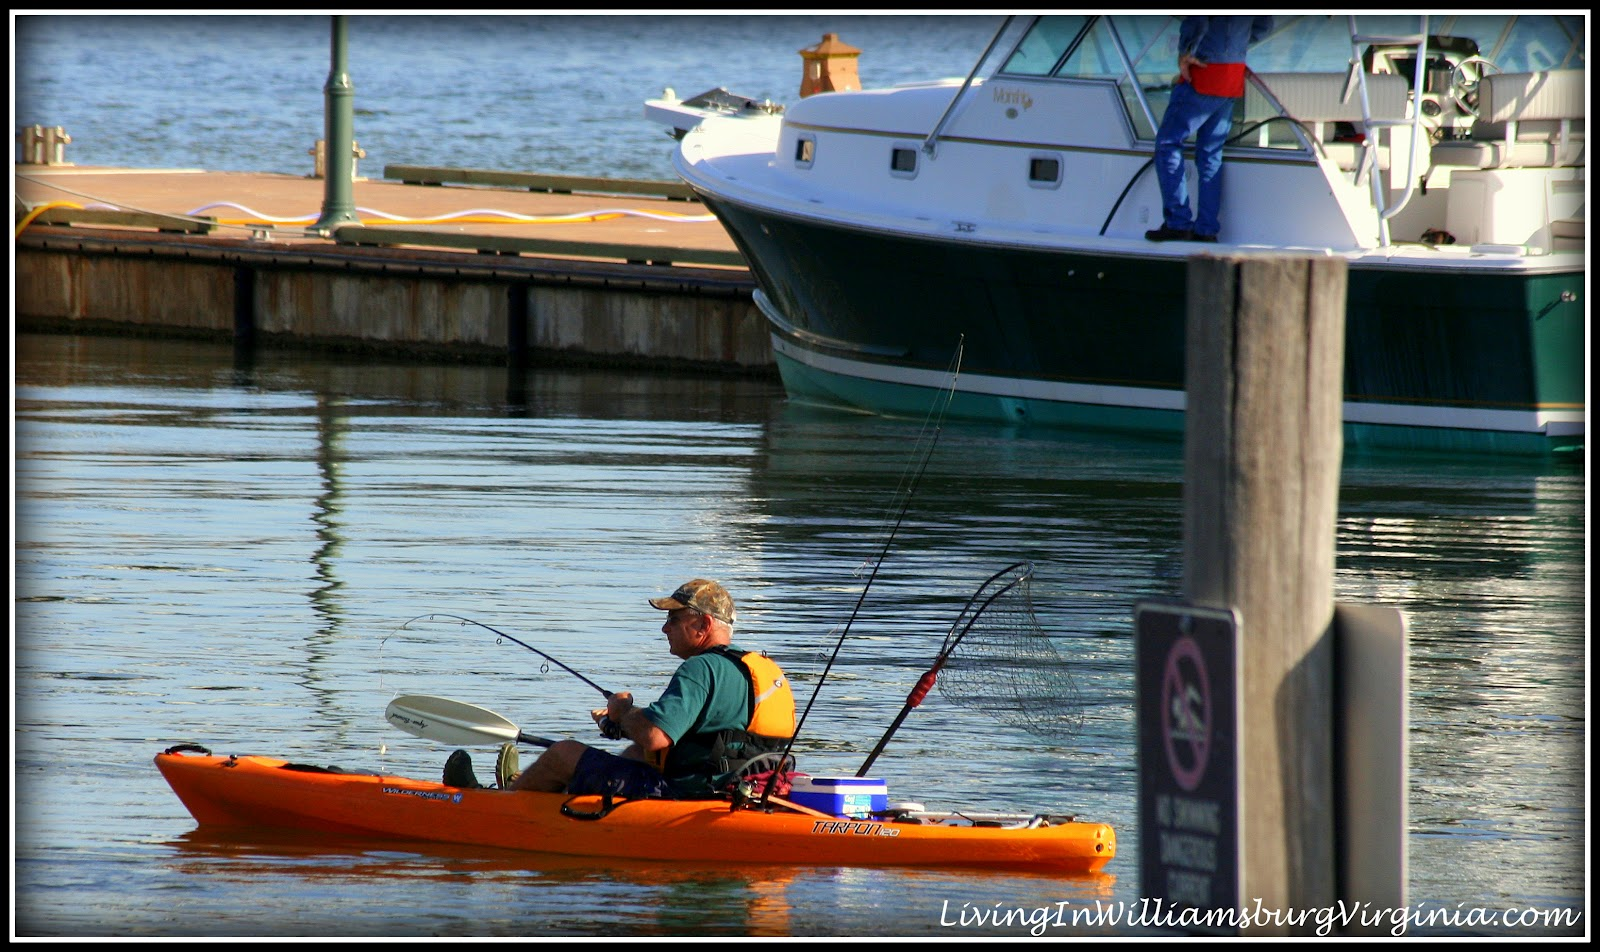 Living in williamsburg virginia kayak fishing york for Fishing in williamsburg va